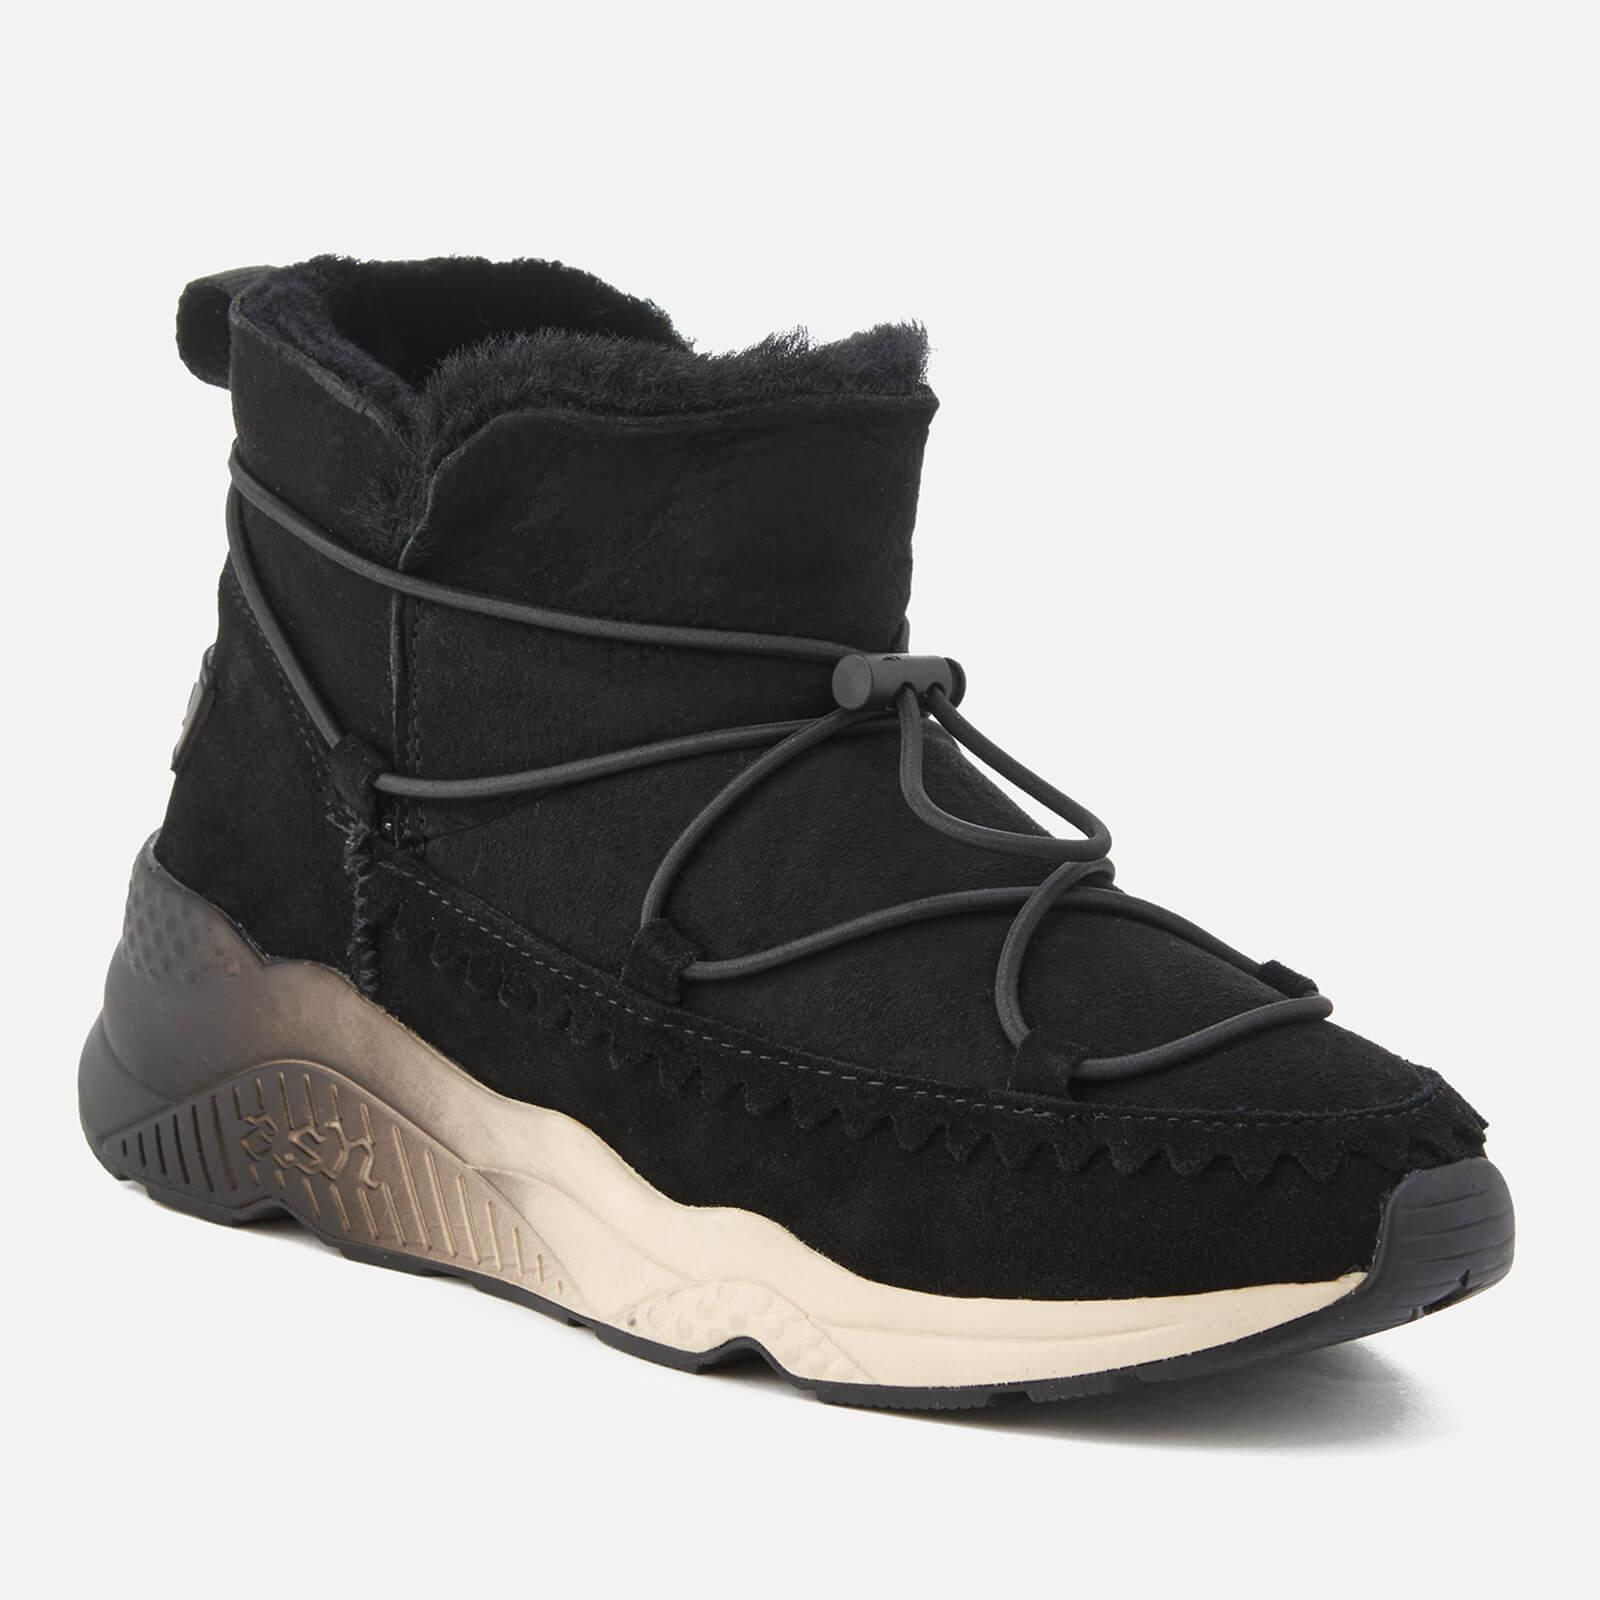 Ash Mitsouko Suede Ankle Boots in Black